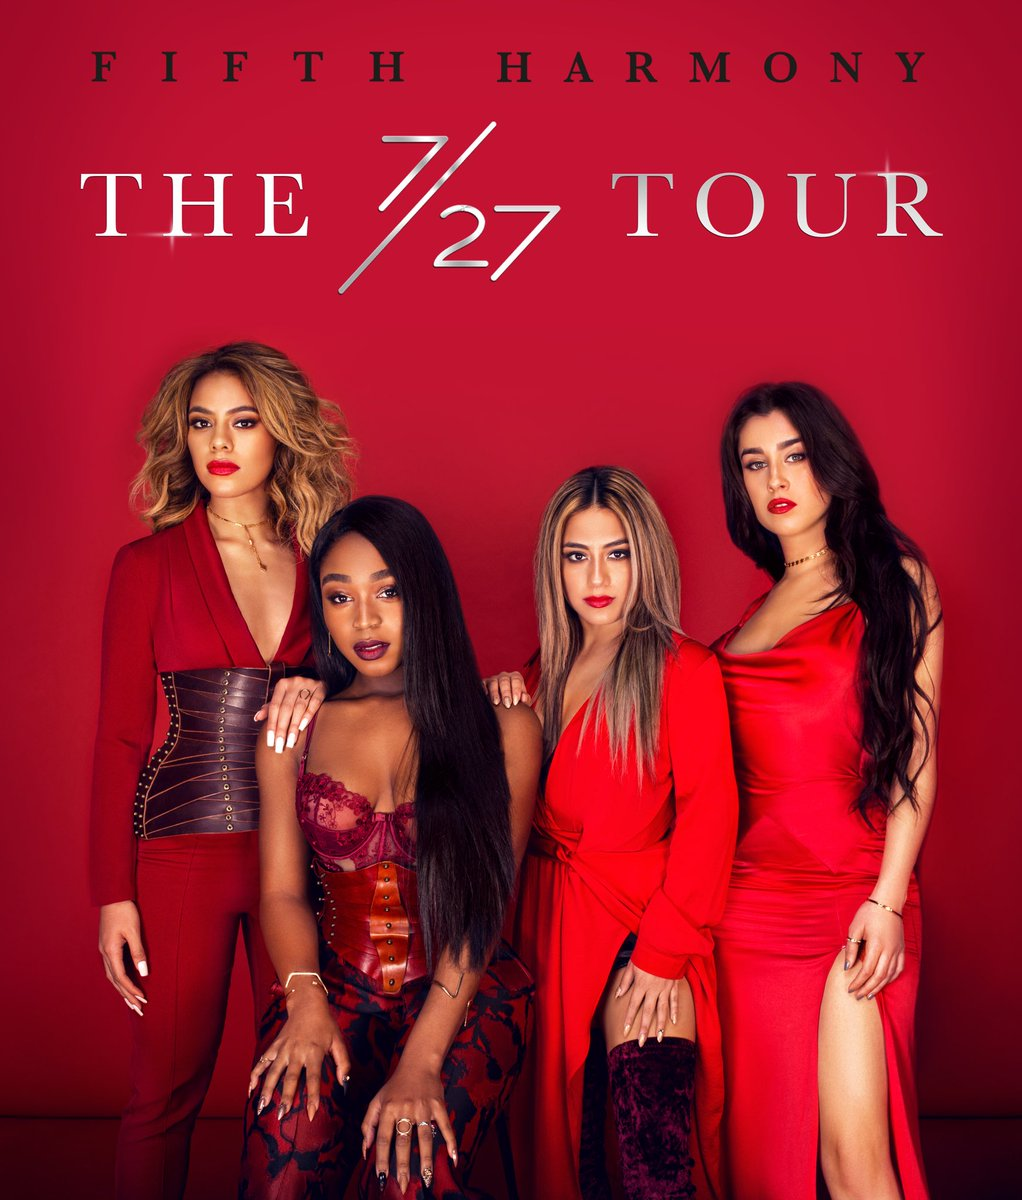 Asia, hope you're ready for the #727Tour!! This is going to be our FIRST EVER ASIAN TOUR so let's have some fun ❤️✈️ https://t.co/3hfkeOymEV